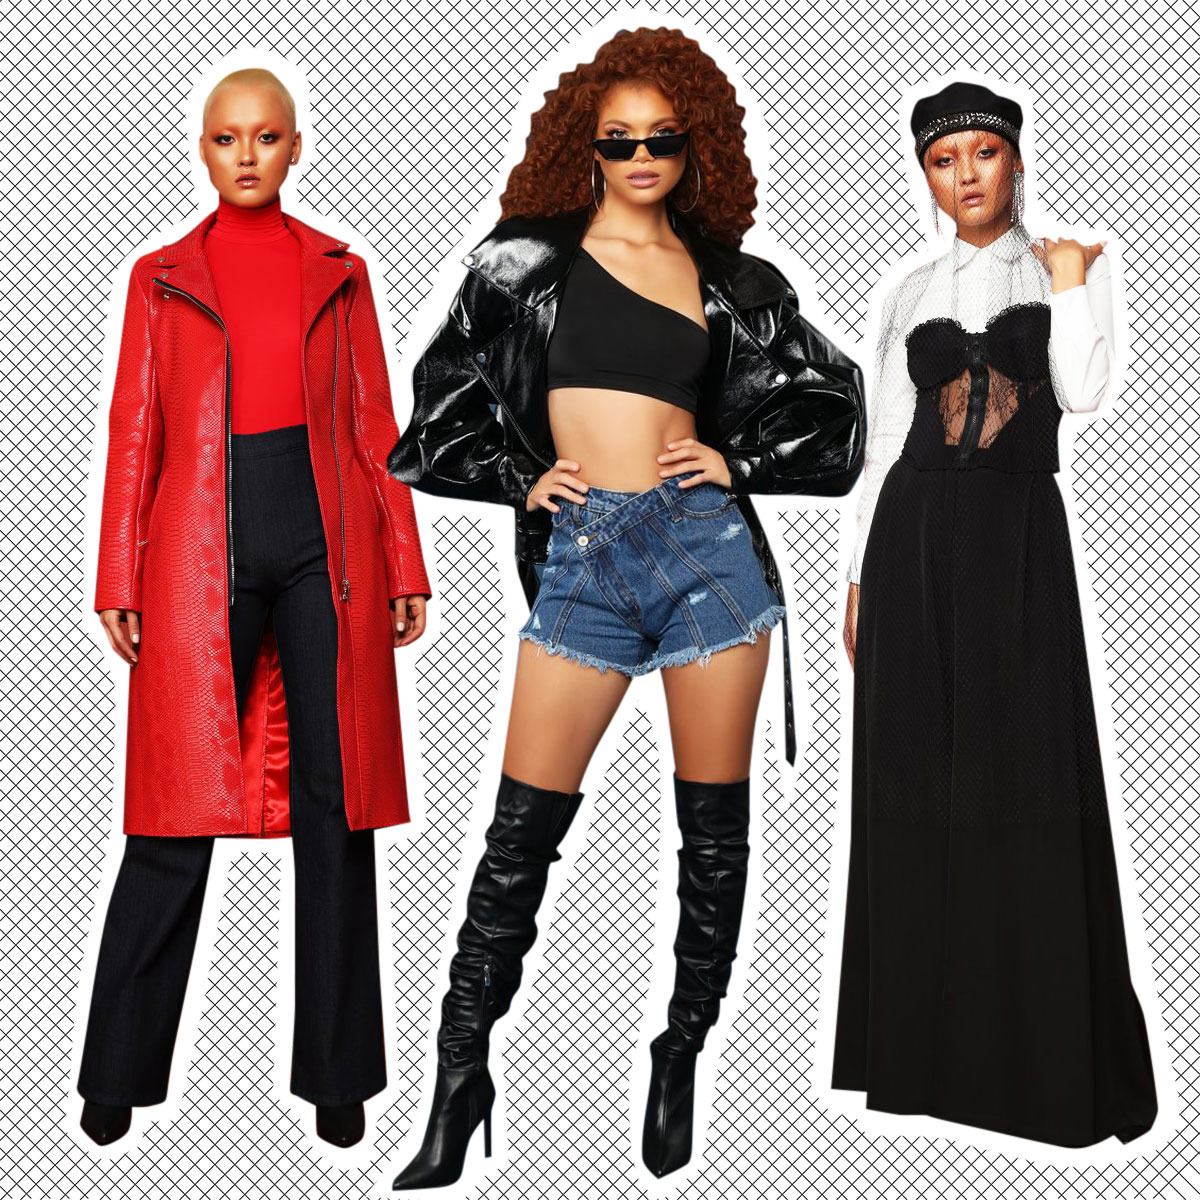 444ec038eb4 Review: Cardi B's Fashion Nova Collection